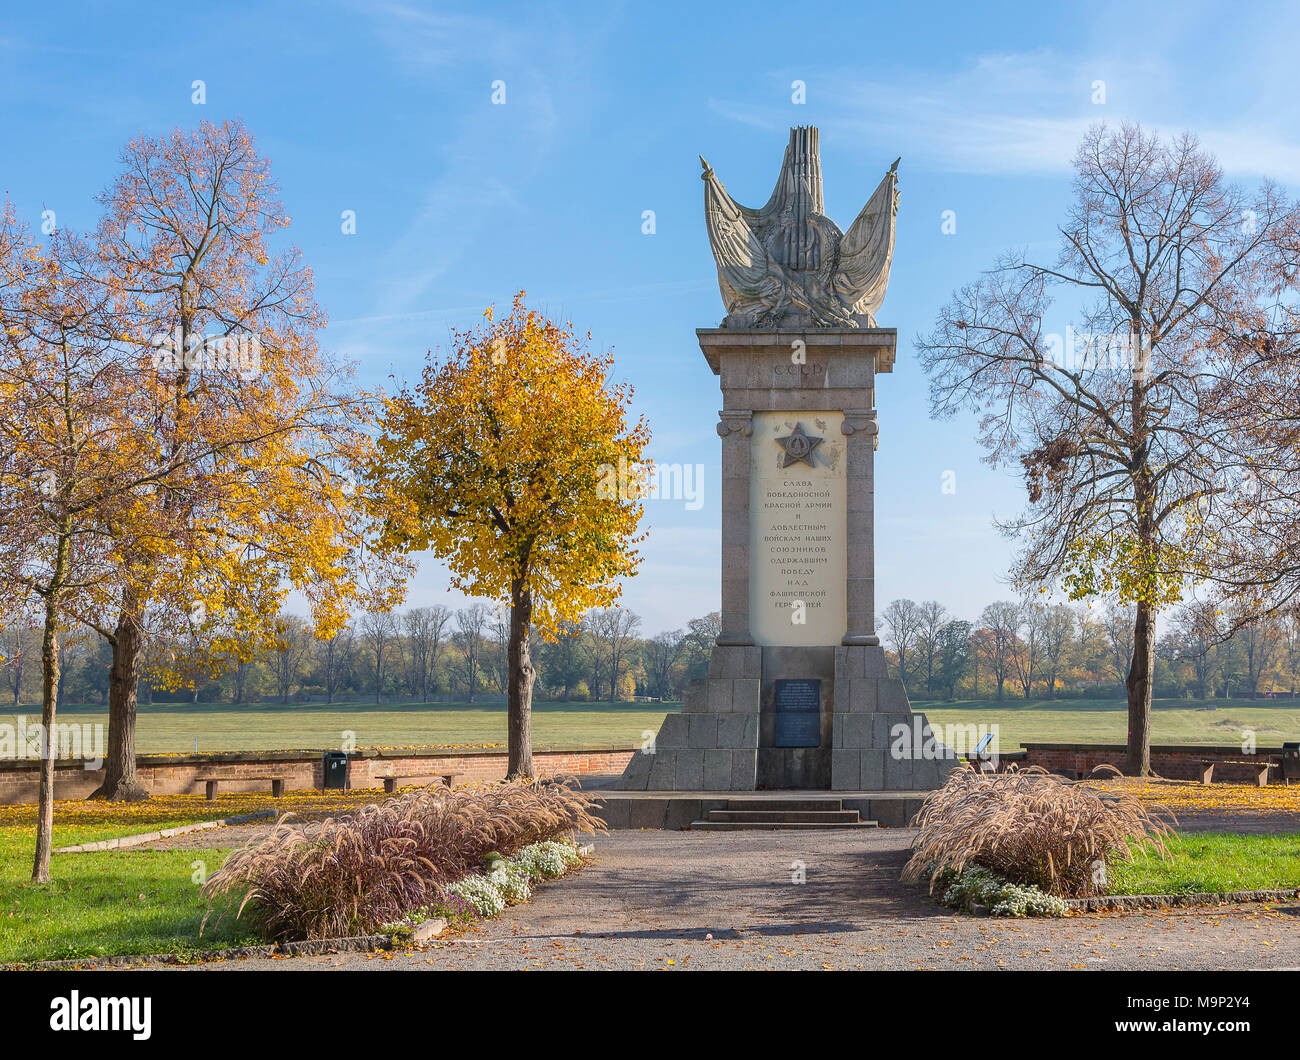 Monument of Encounter, Soviet monument remembering the meeting with American troops in 1945 on the Elbe River in Torgau, Saxony - Stock Image